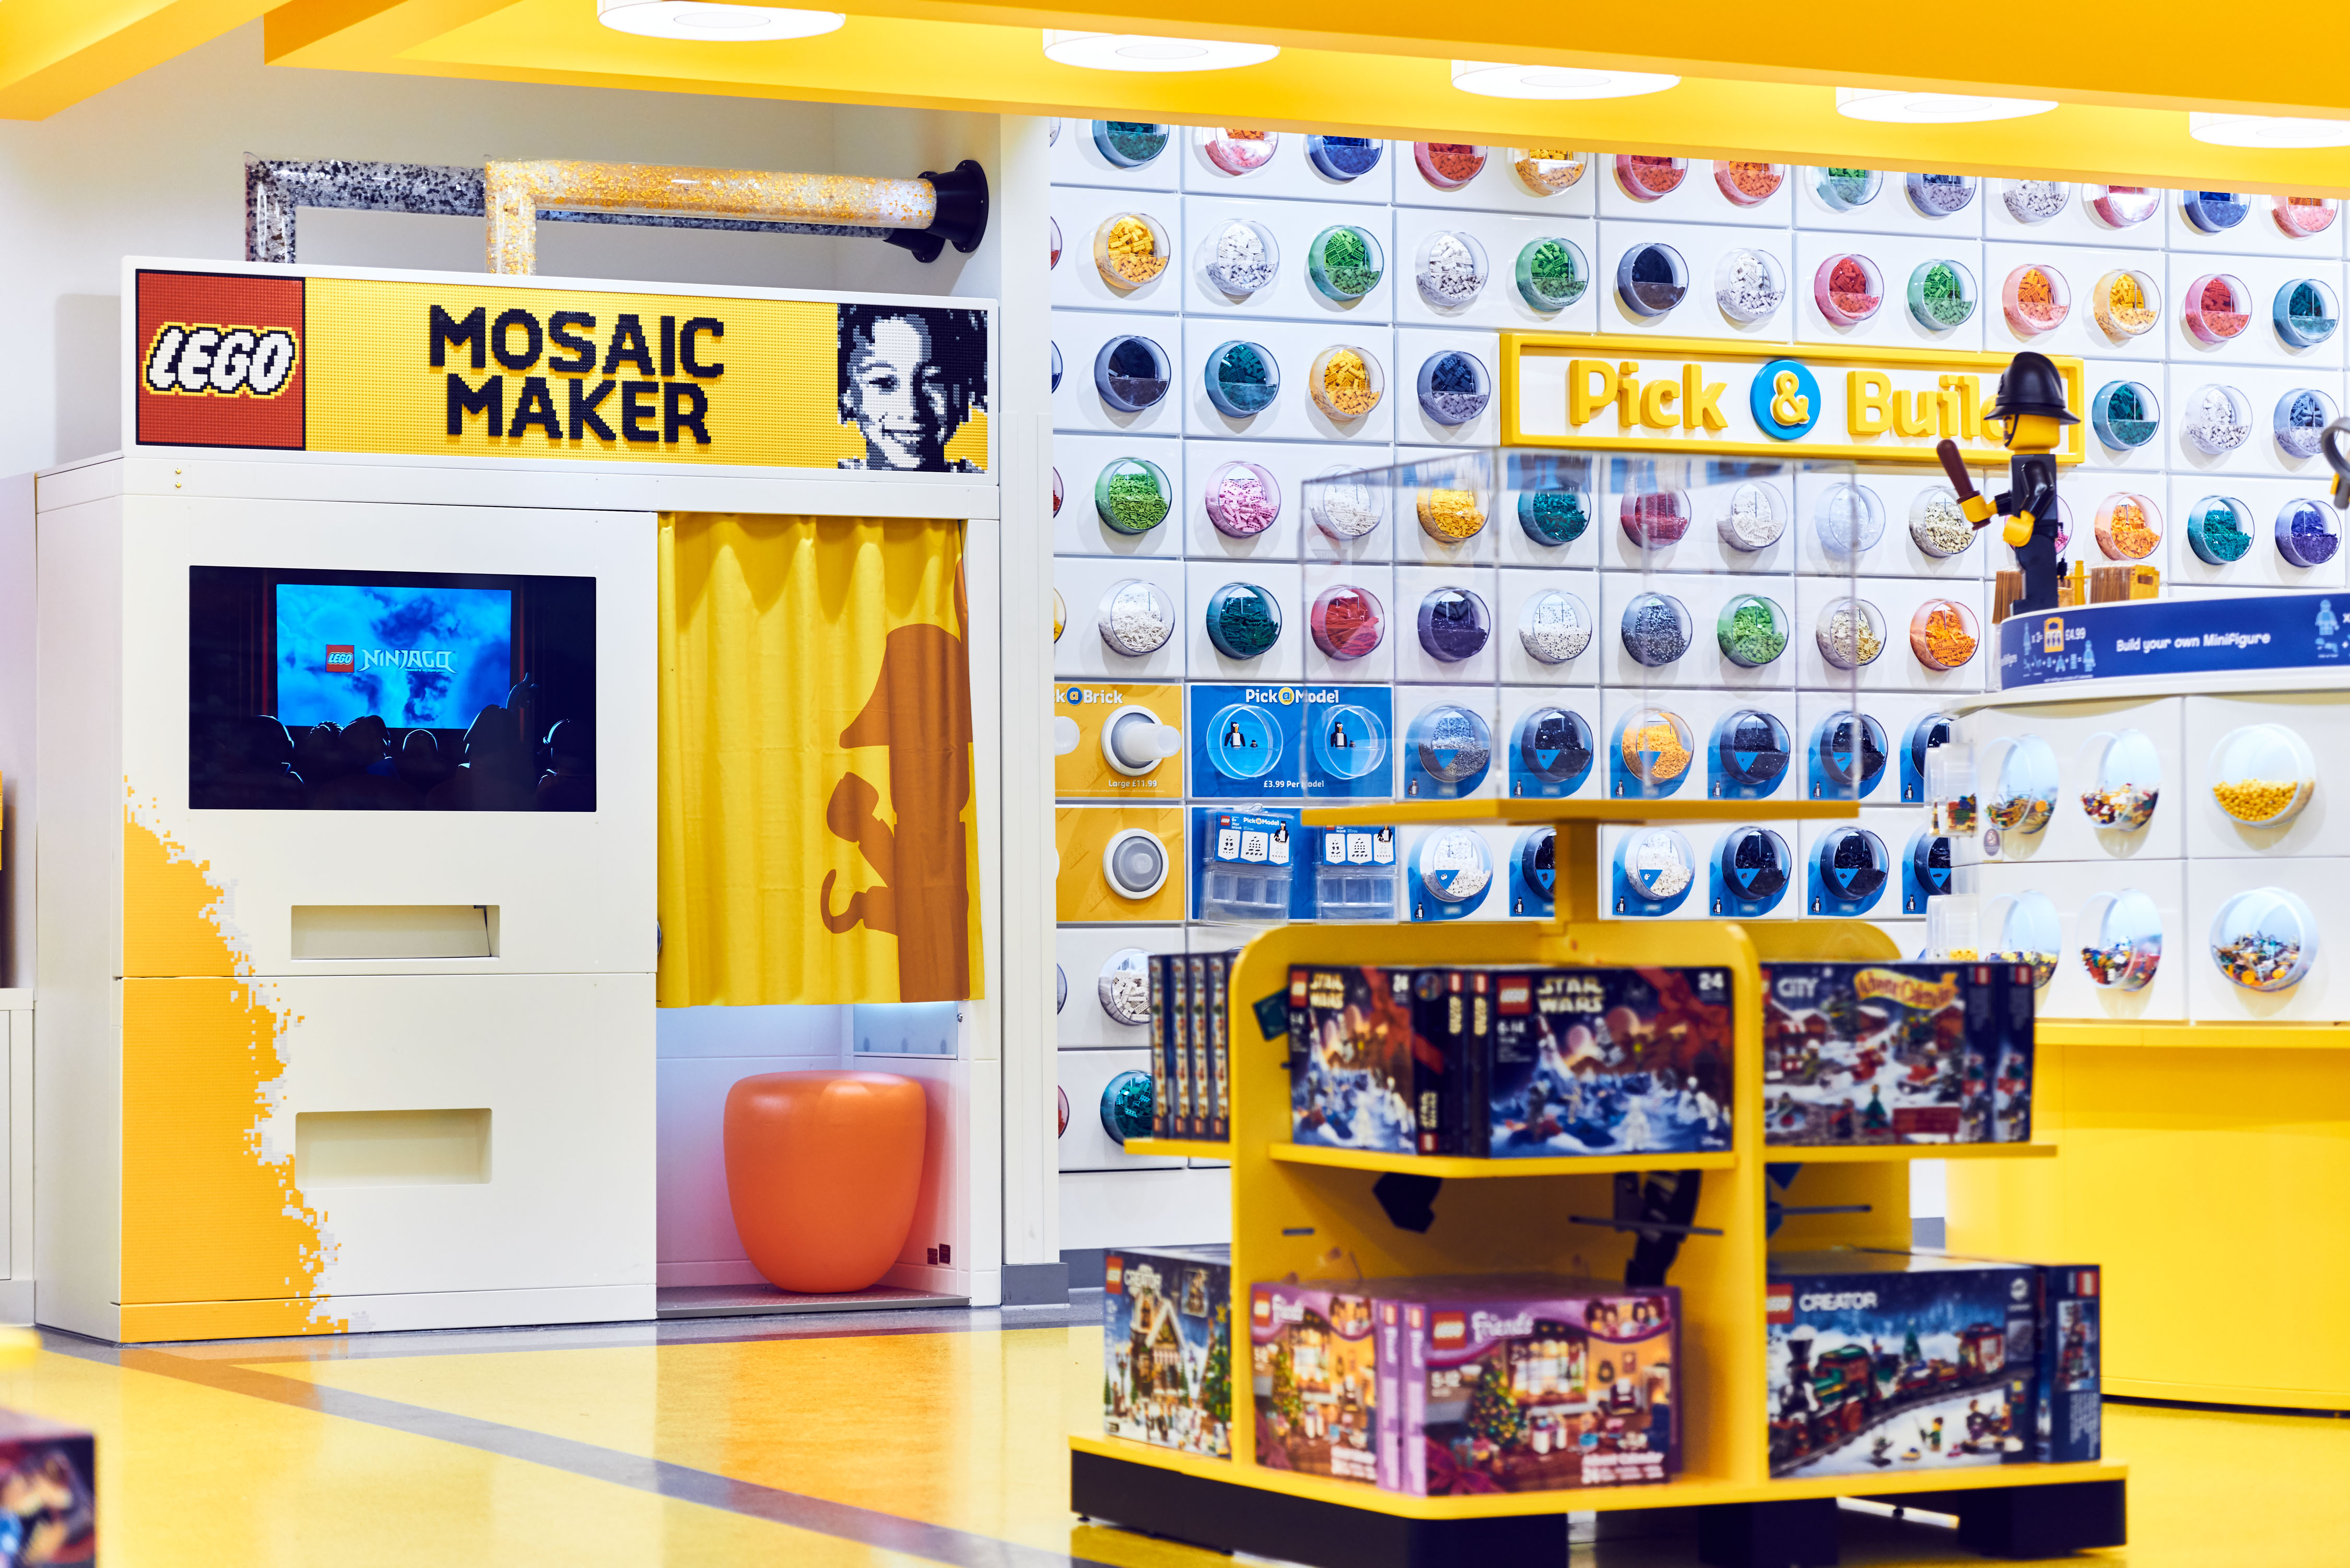 Mosaic-Maker-2-LEGO-Store-London-EMBARGO-171116-Copyright-LEGO